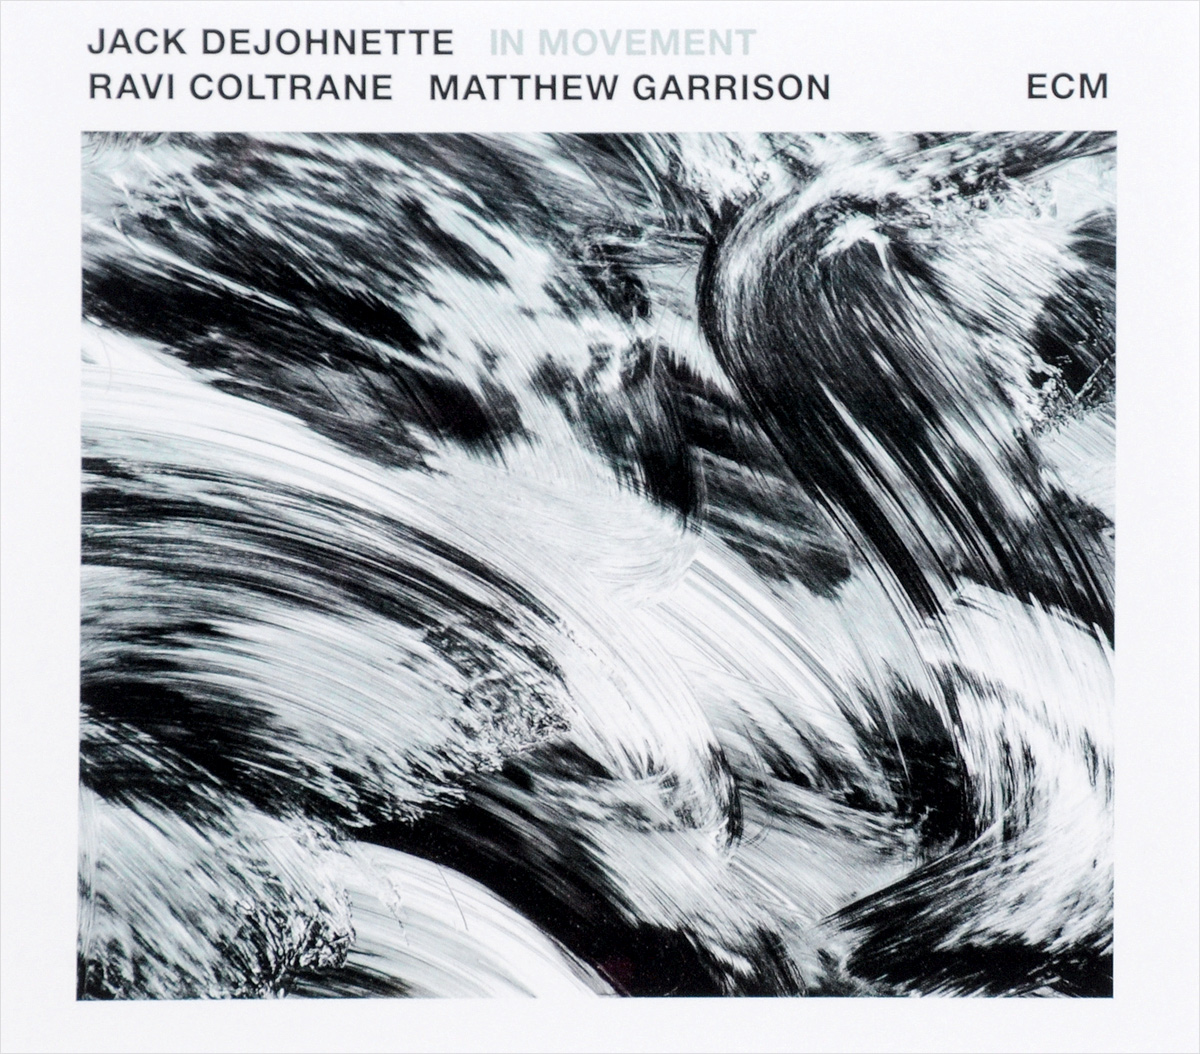 Jack Dejohnette. In Movement